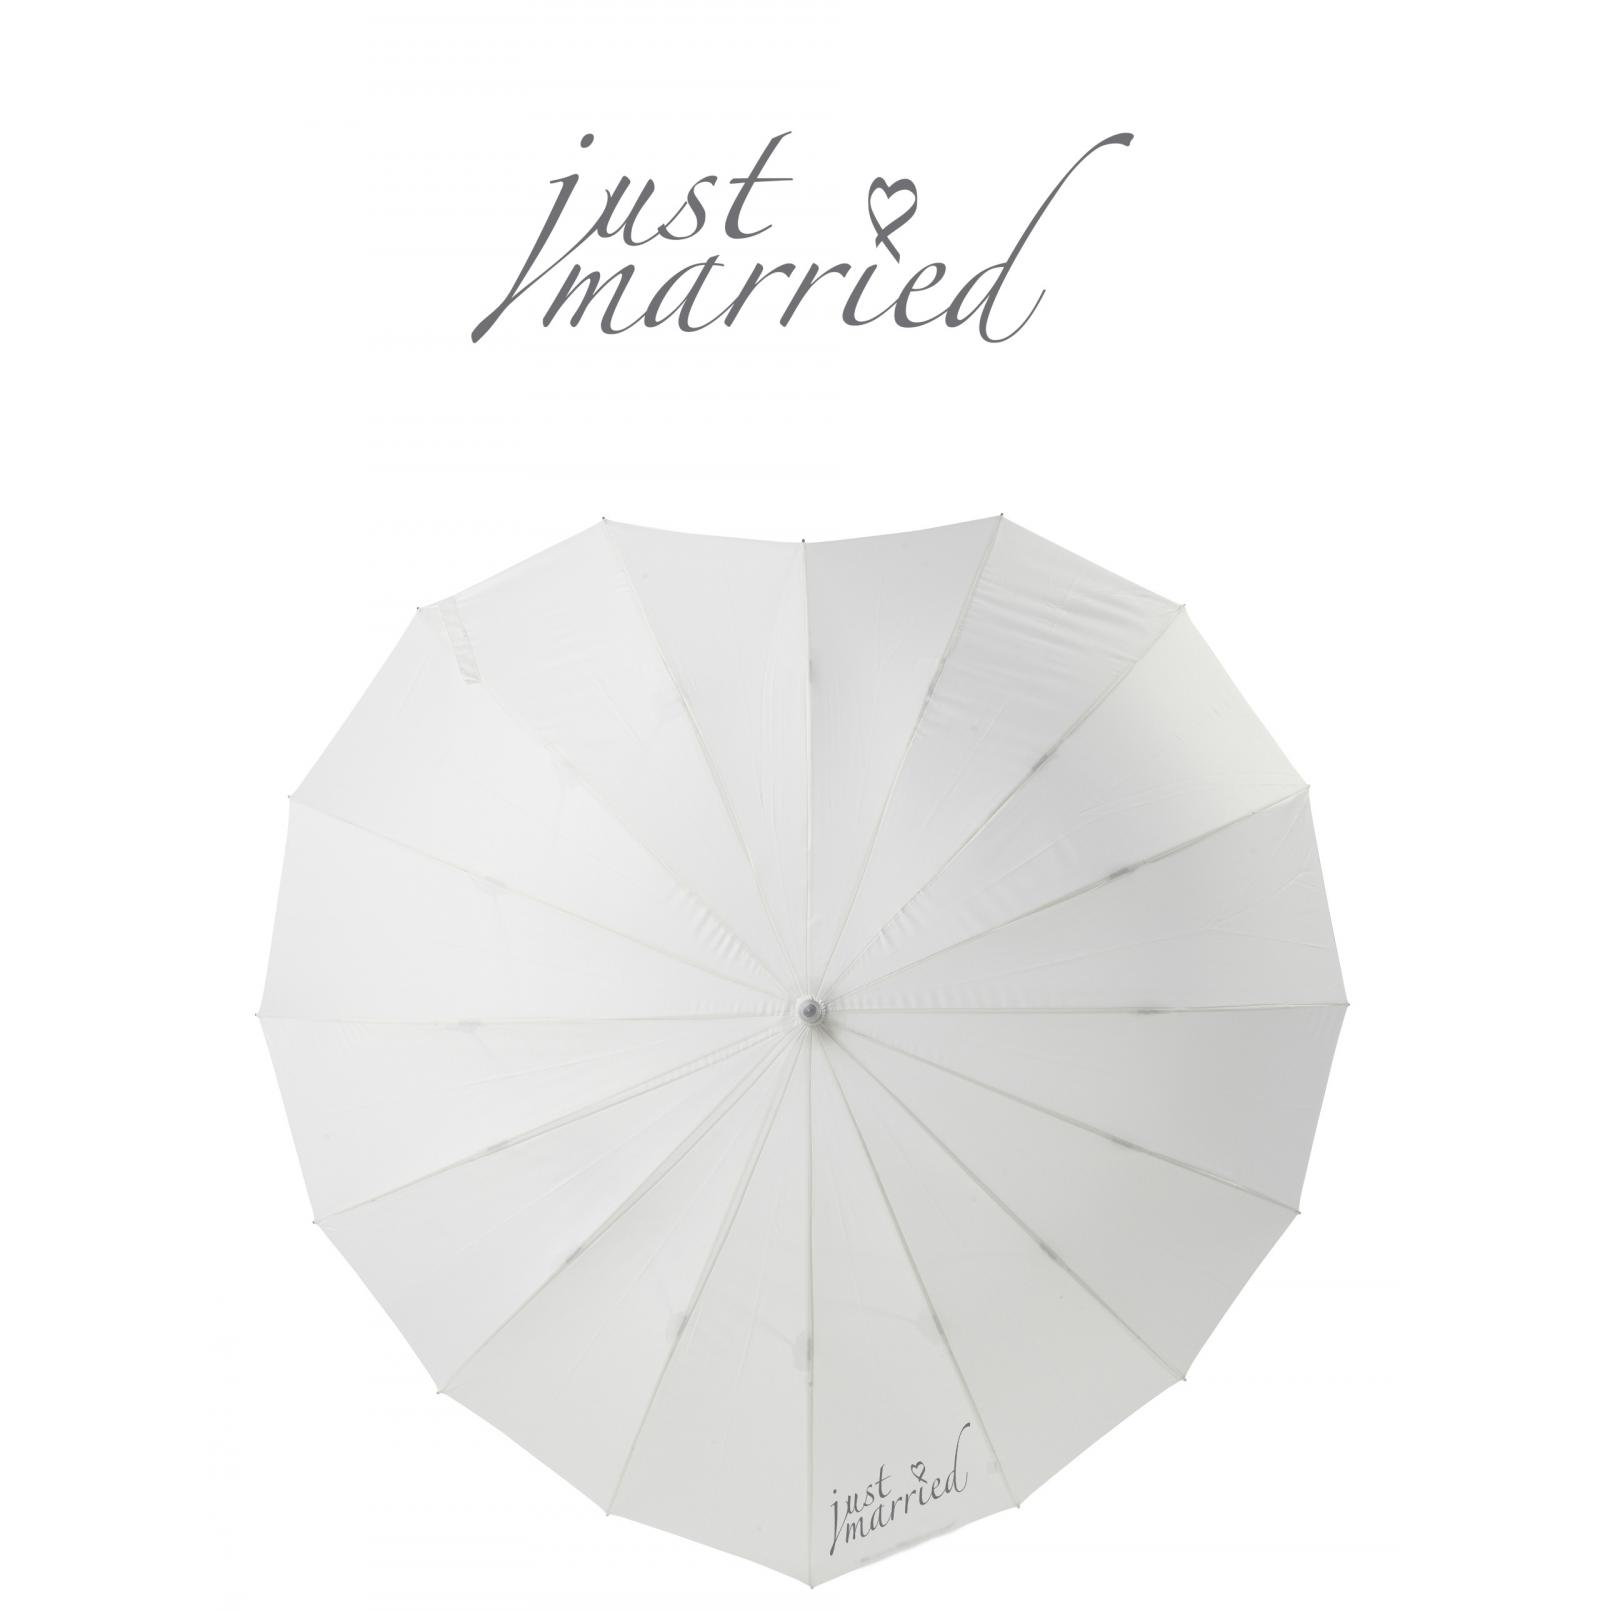 Poirier Heart Wedding Umbrella - Just Married